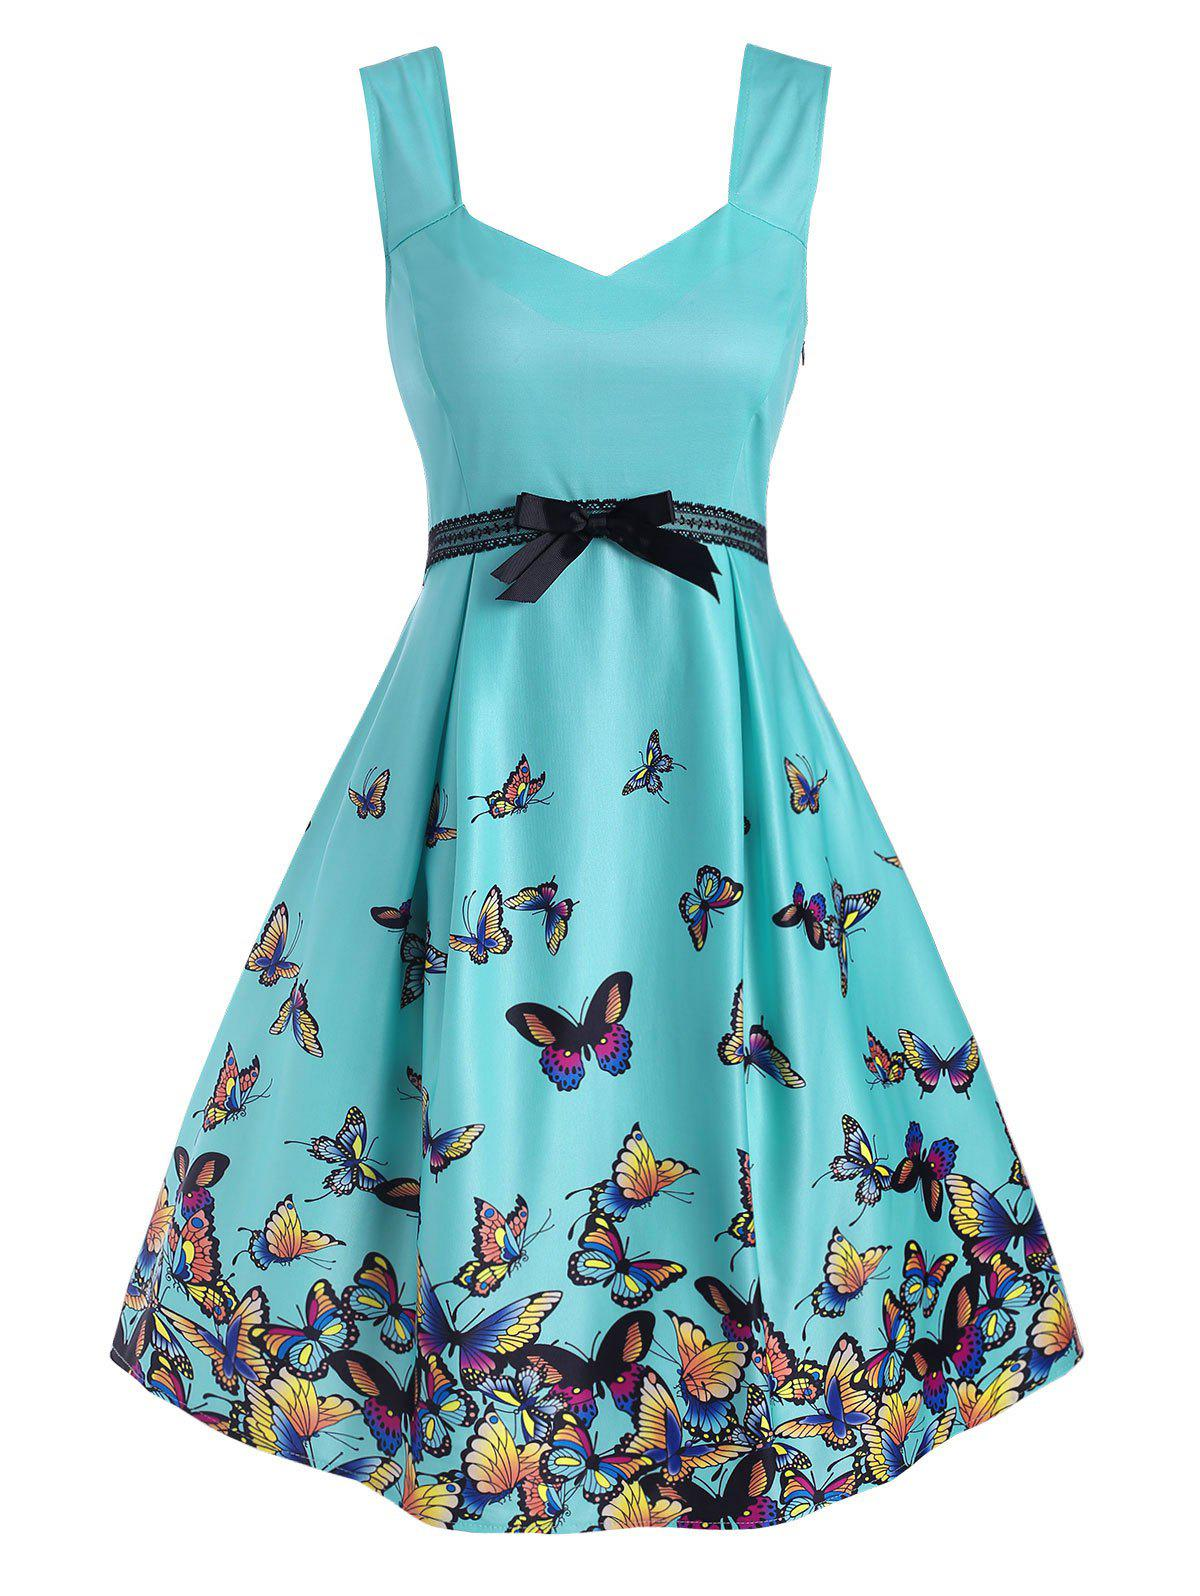 Chic Butterfly Print Lace Panel Bowknot Empire Waist Dress